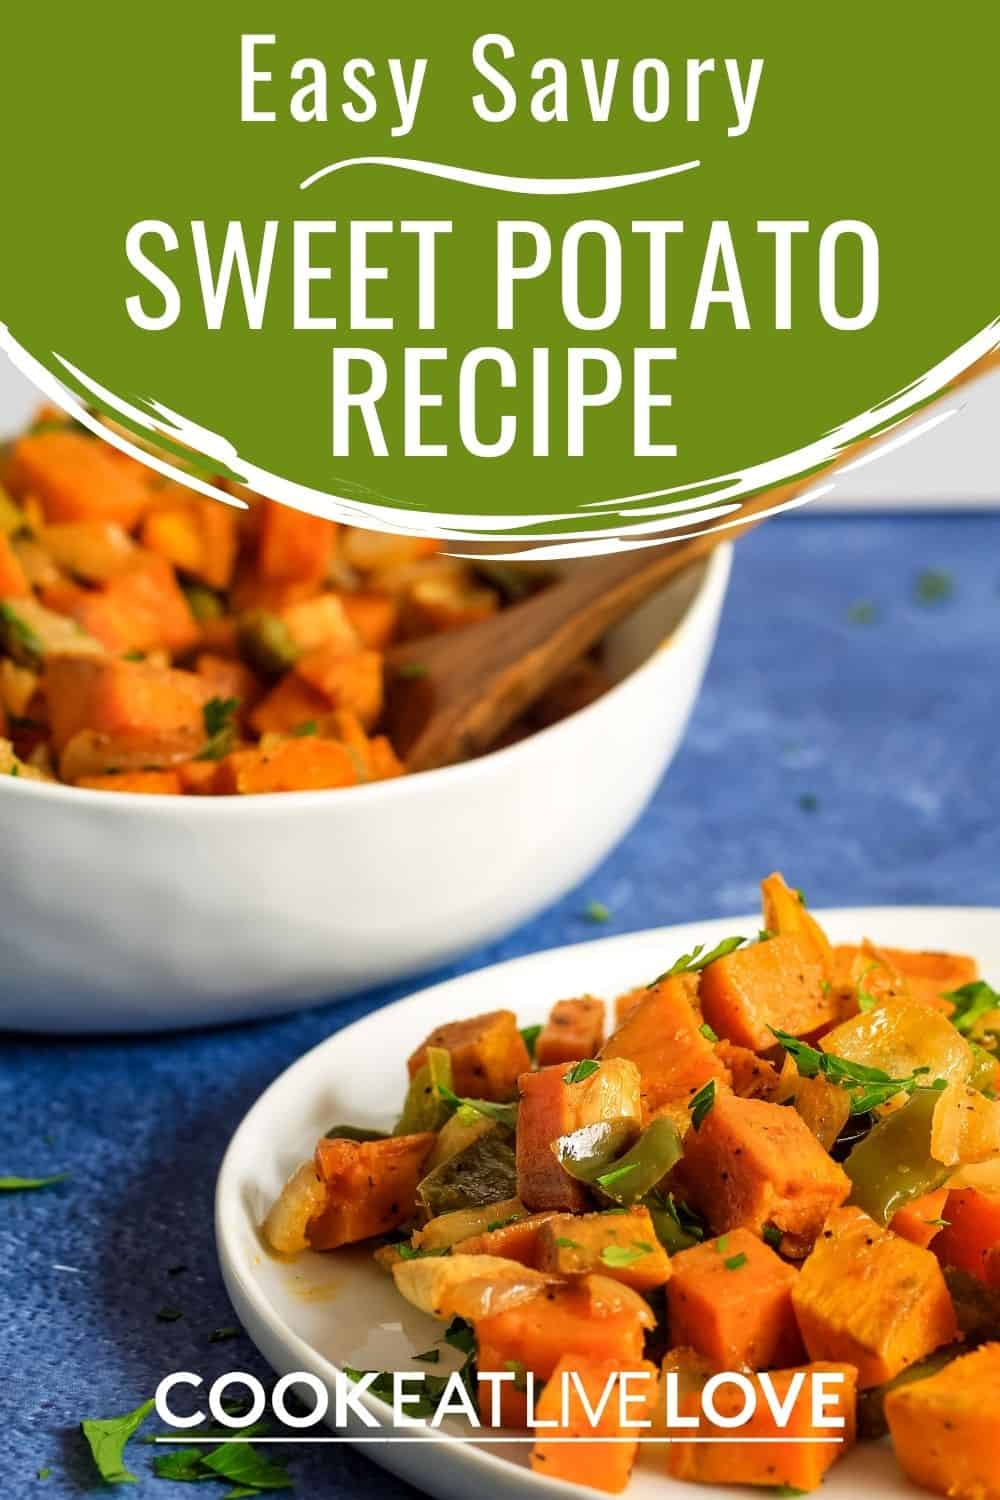 Pin for pinterest with bowl and plate of sweet potato hash served up.